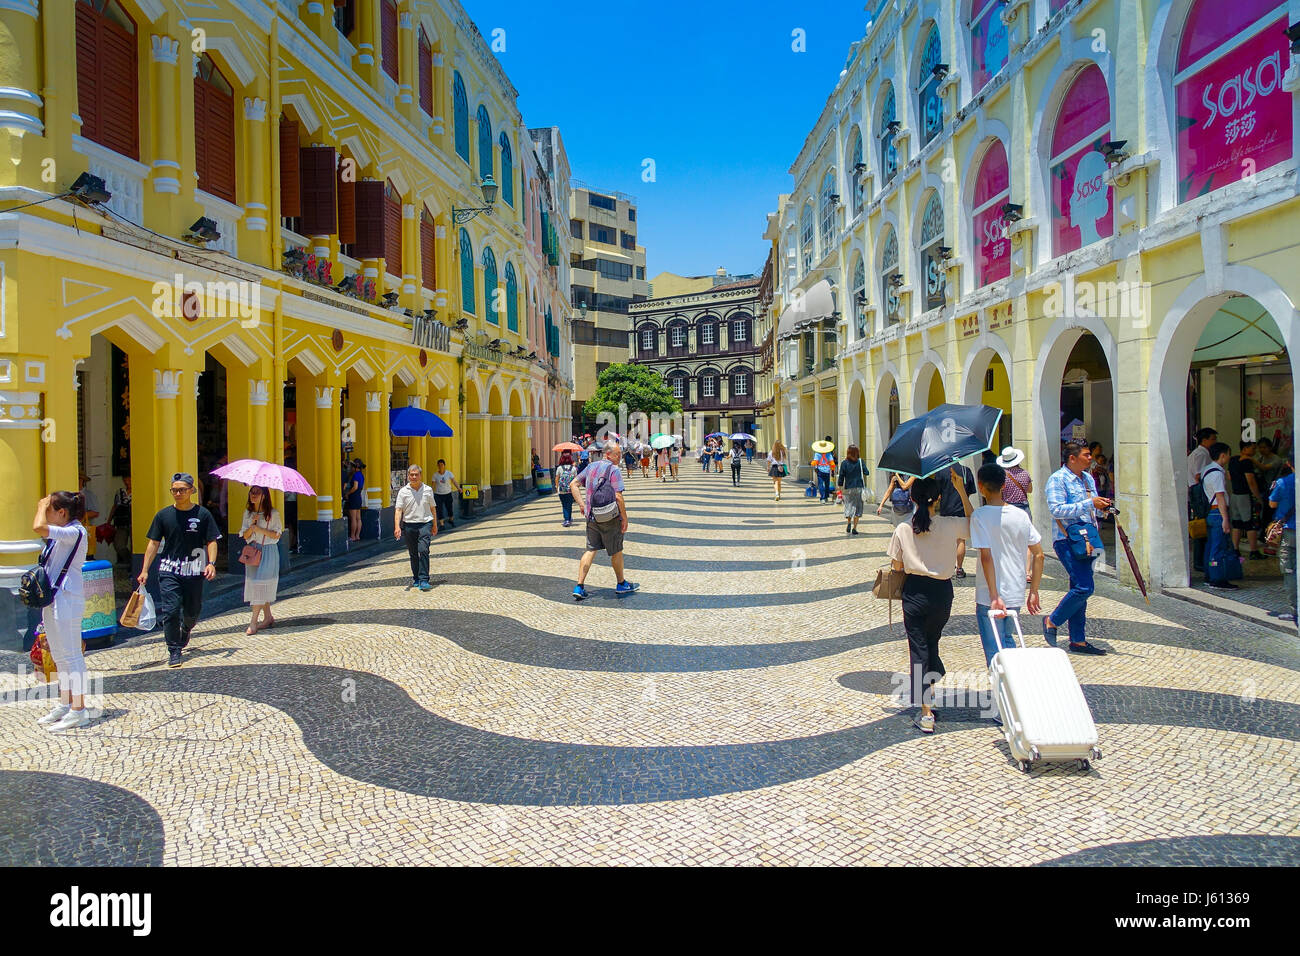 MACAU, CHINA- MAY 11, 2017: An unidentified people walking near of the Institute of Civic and Municipal Affairs - Stock Image